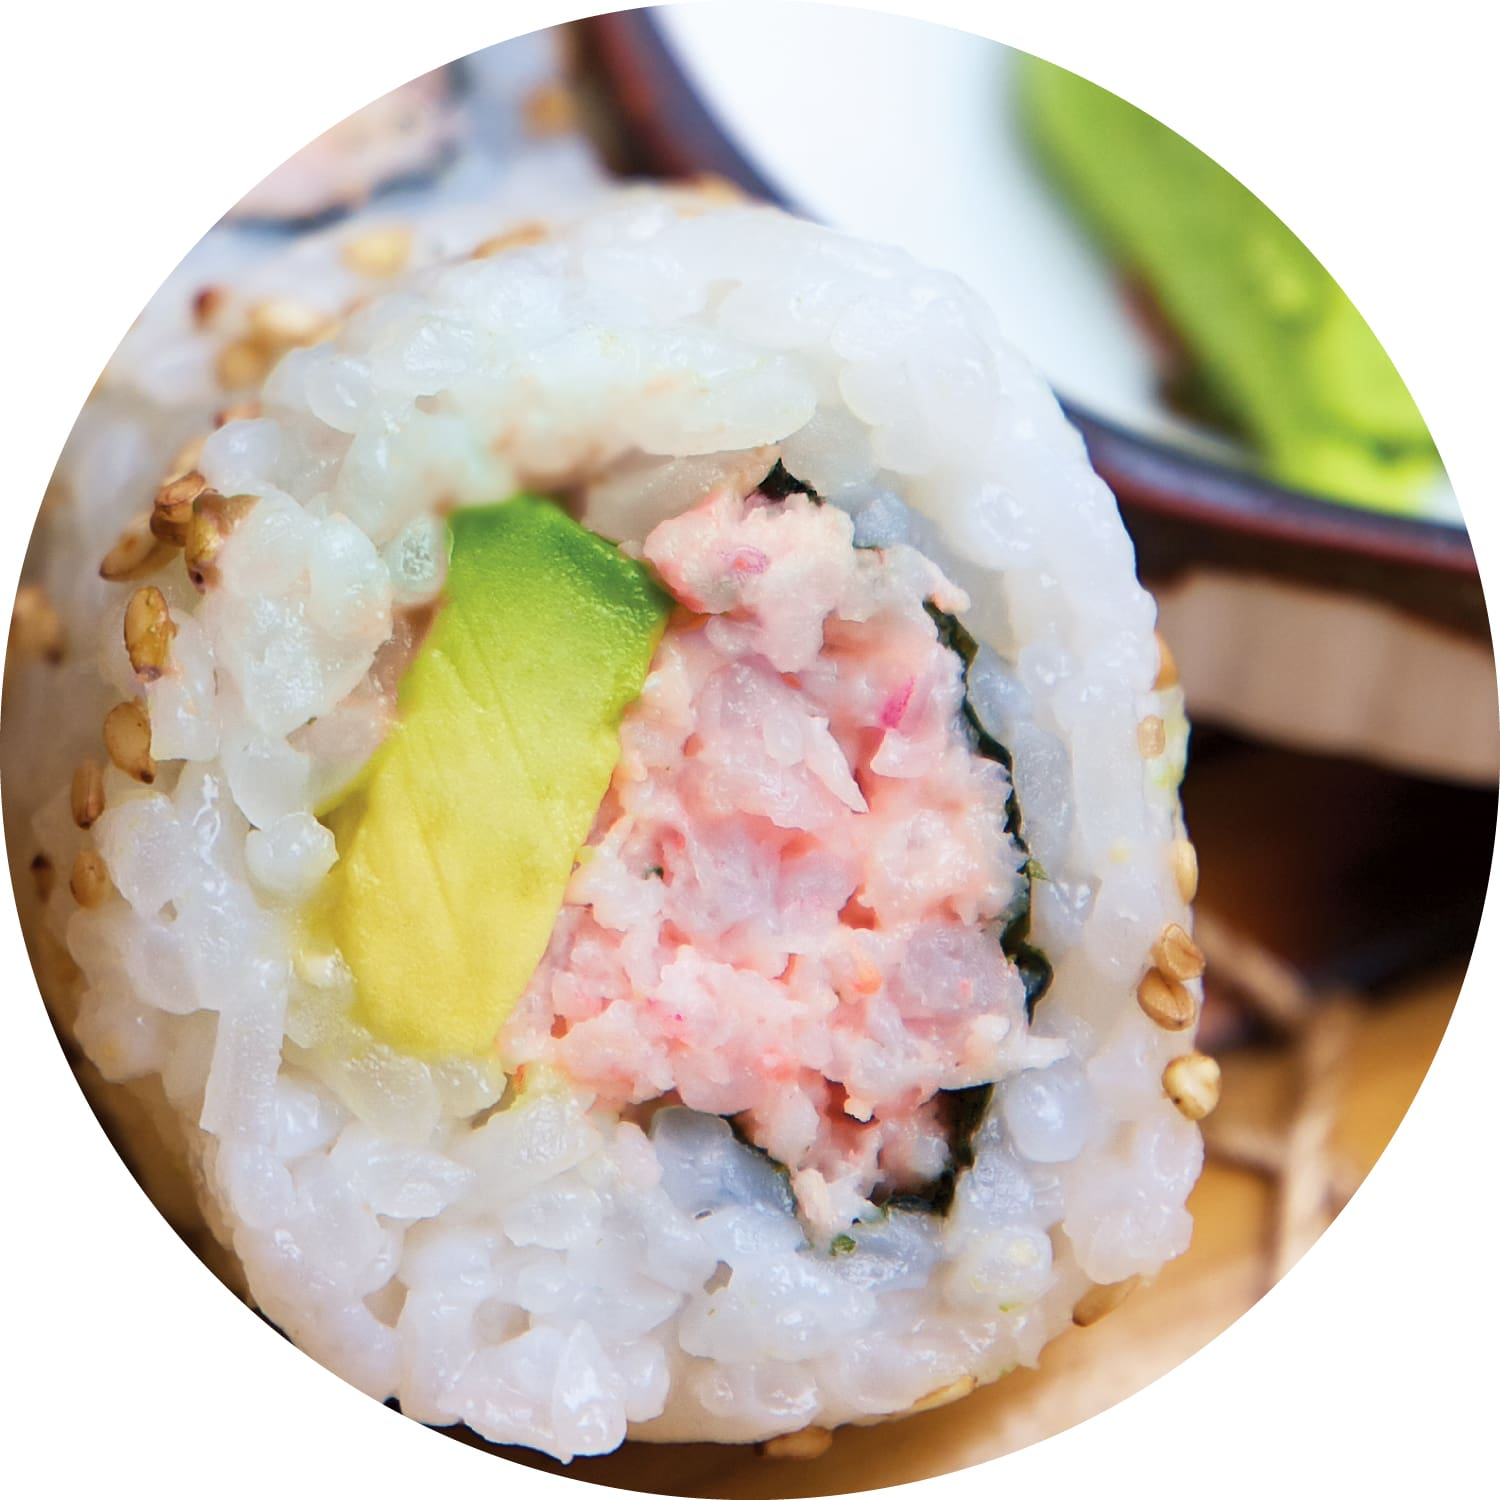 Shrimp & Avocado Roll